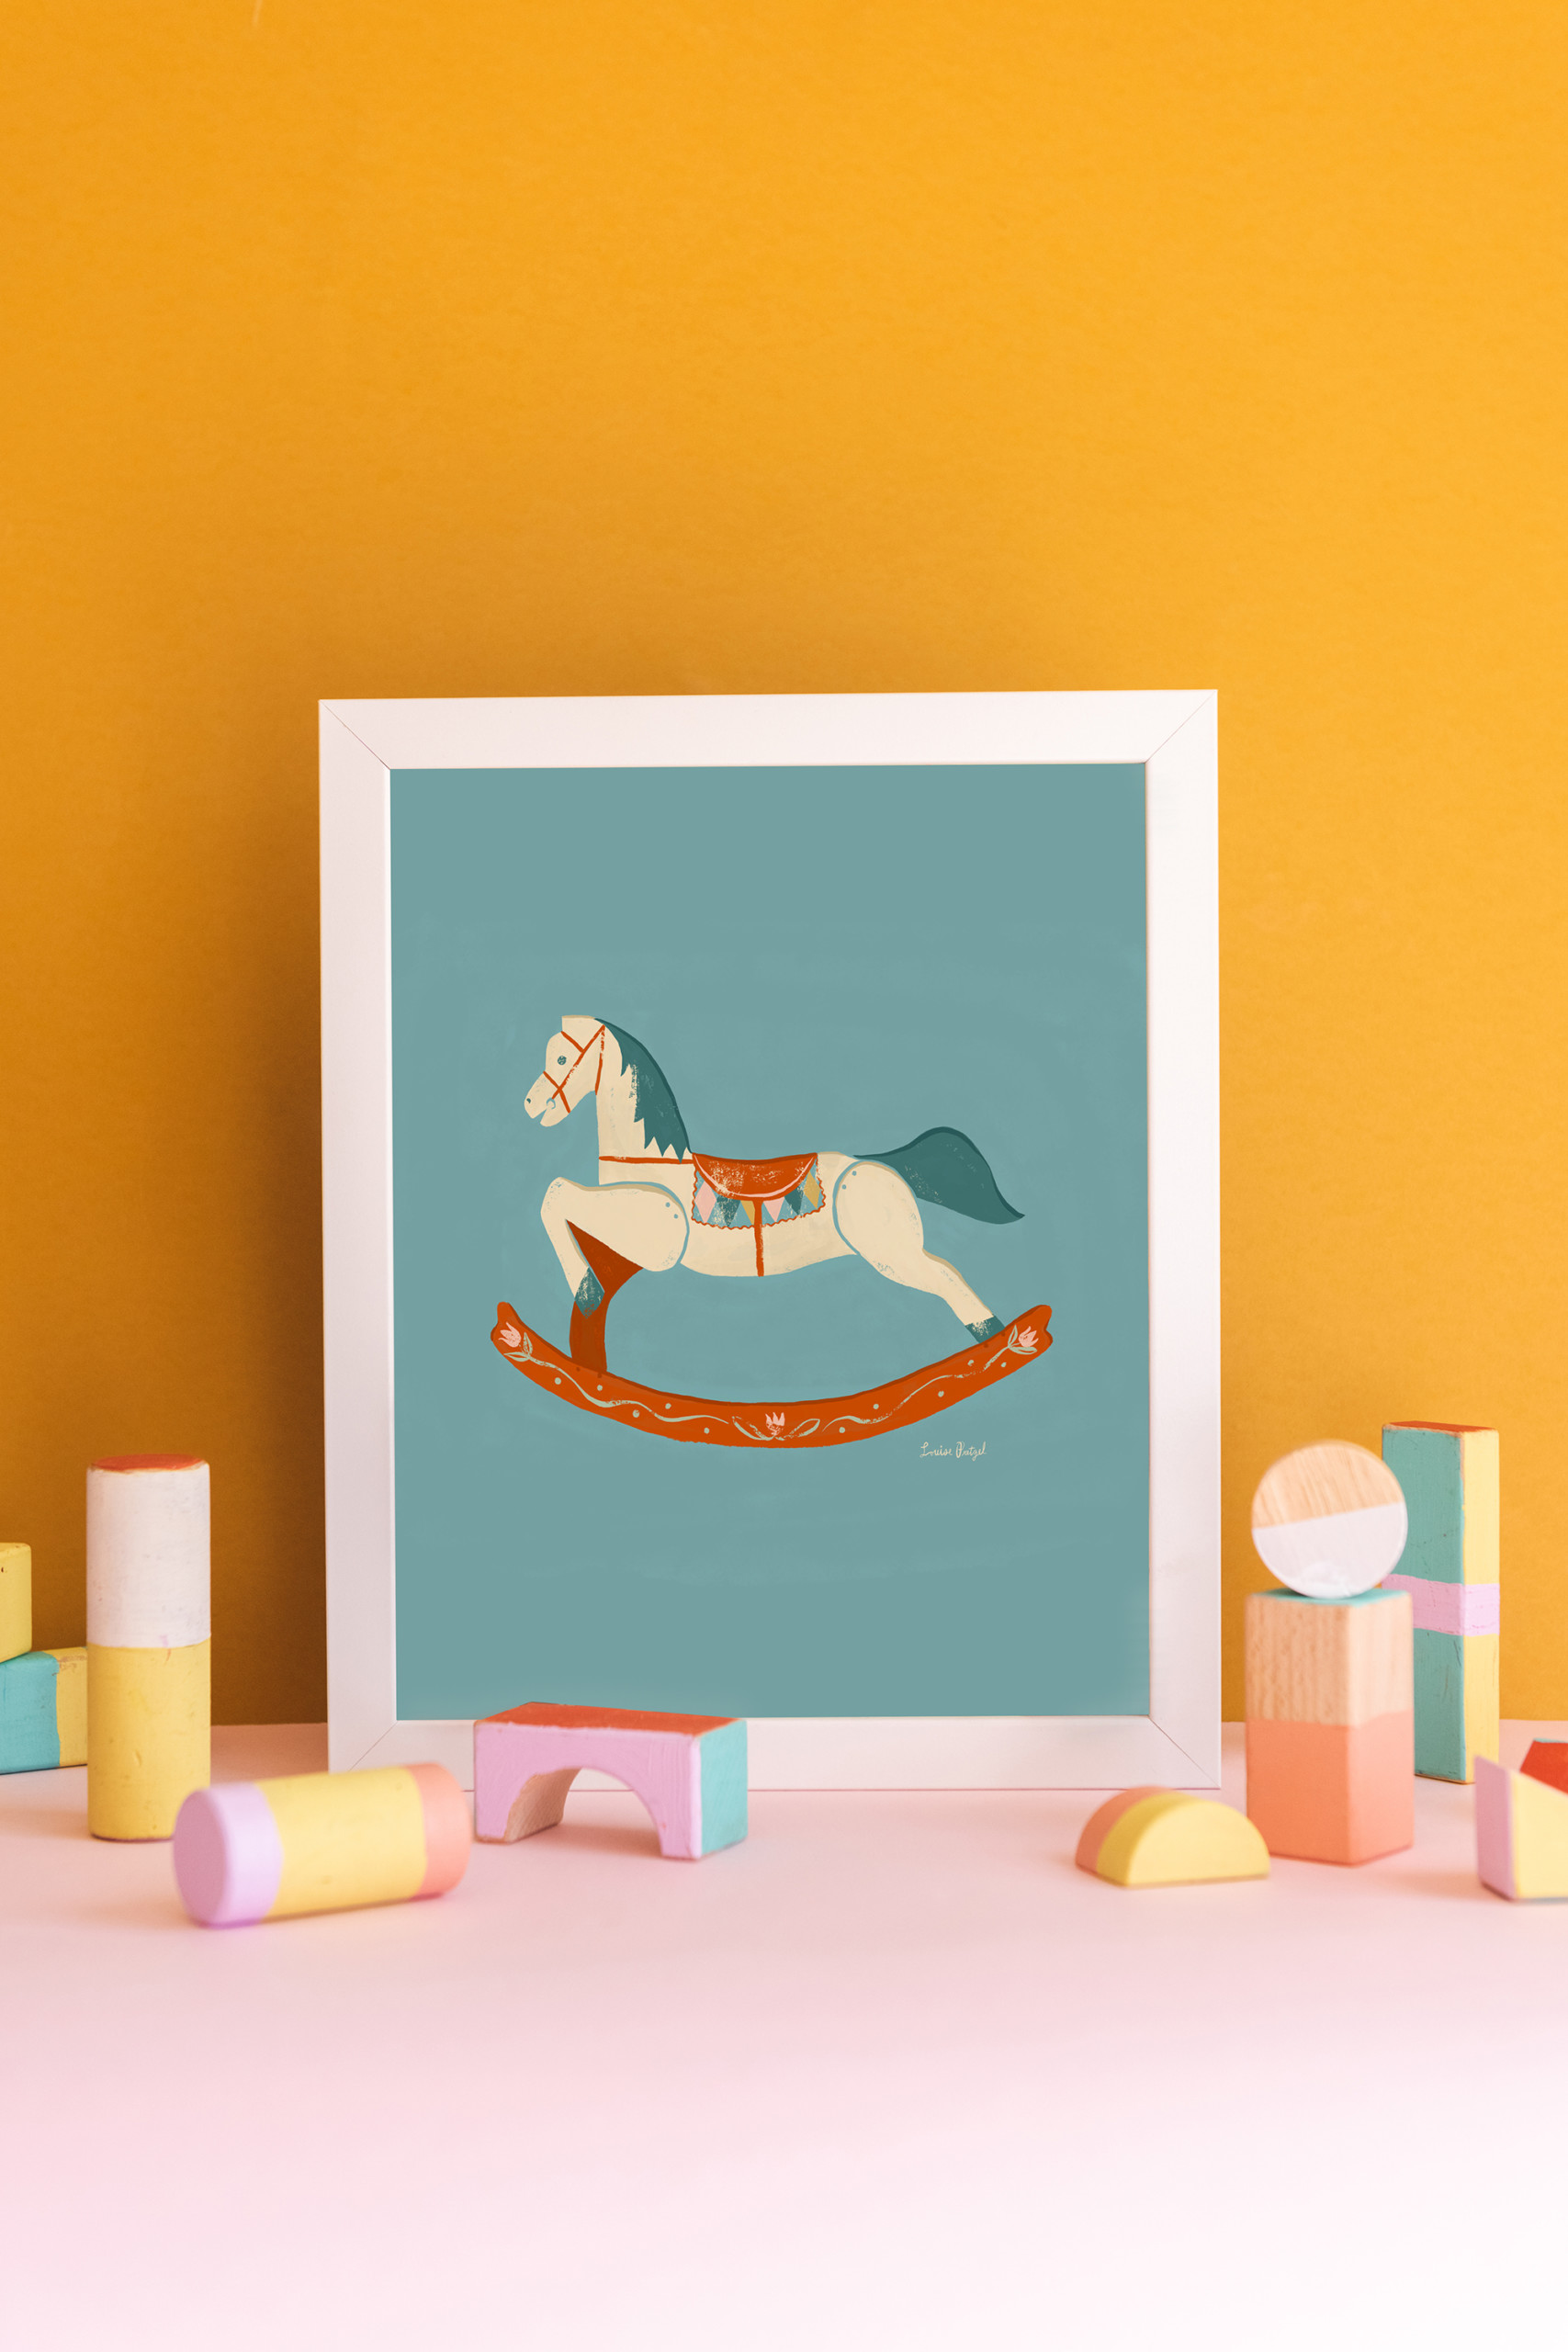 A print of Louise Pretzel's Rocking Horse leaning against a gold wall with pastel wooden blocks in front of it.